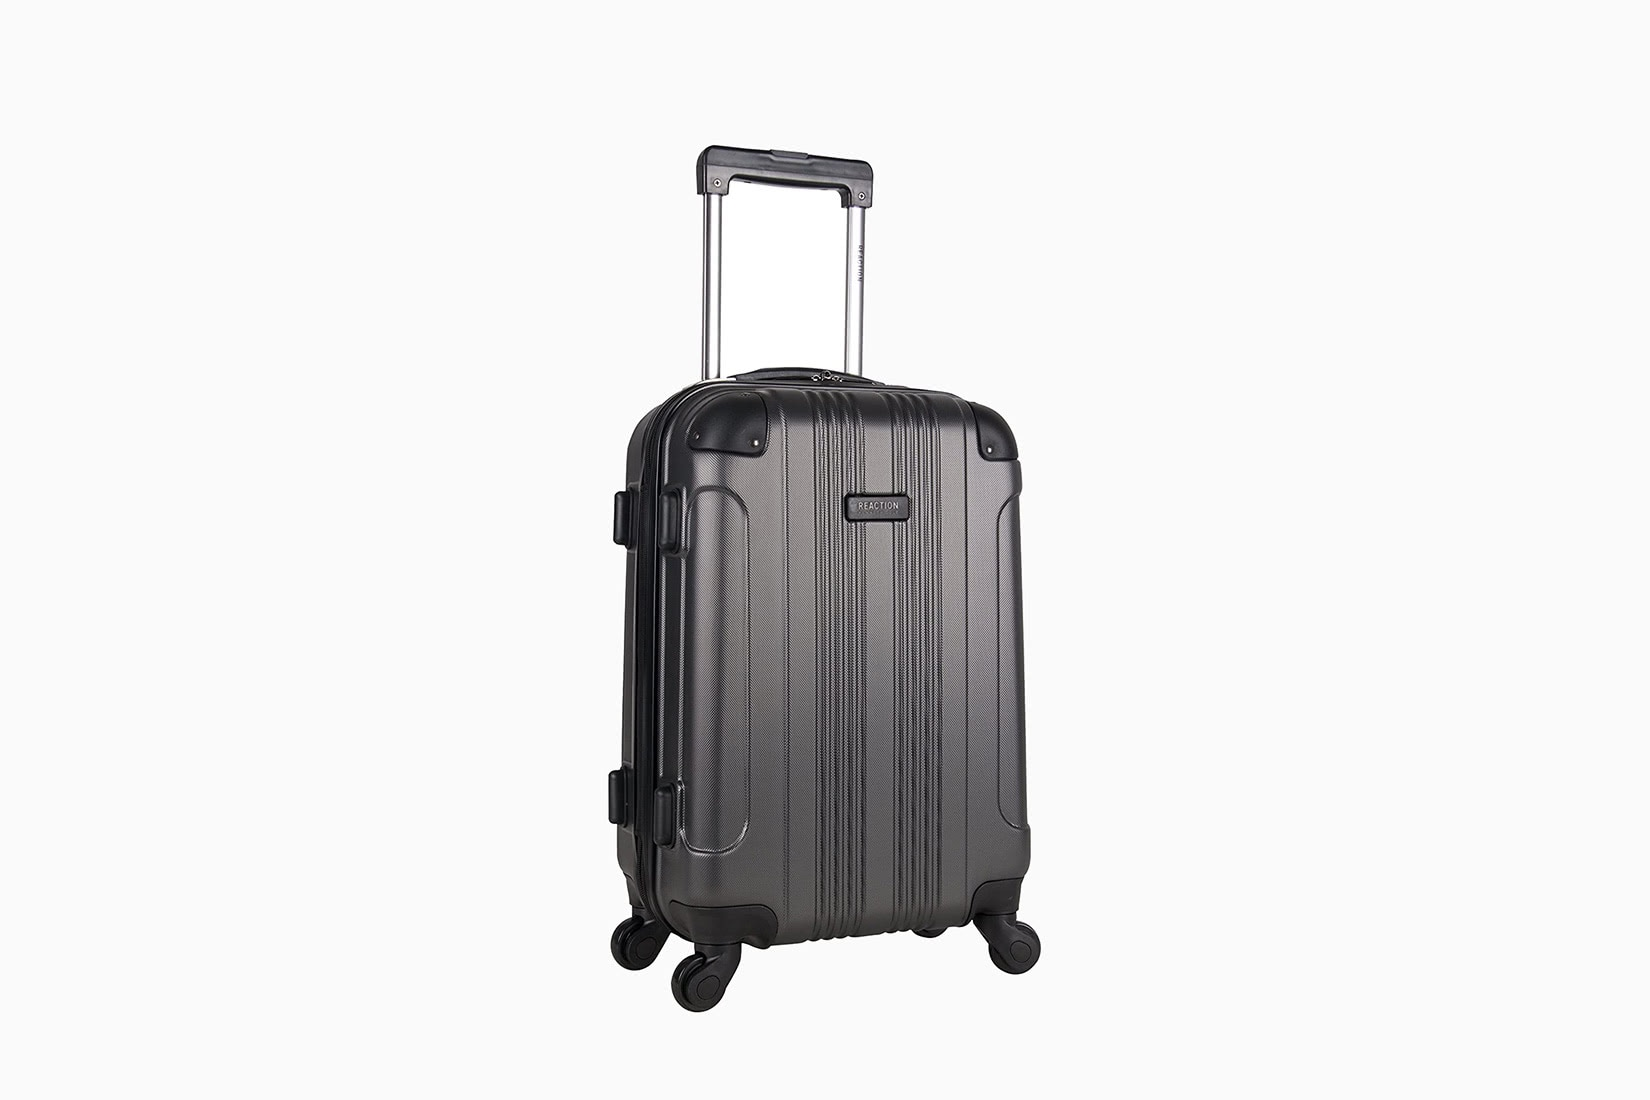 best carry-on luggage travel kenneth cole lightweight - Luxe Digital